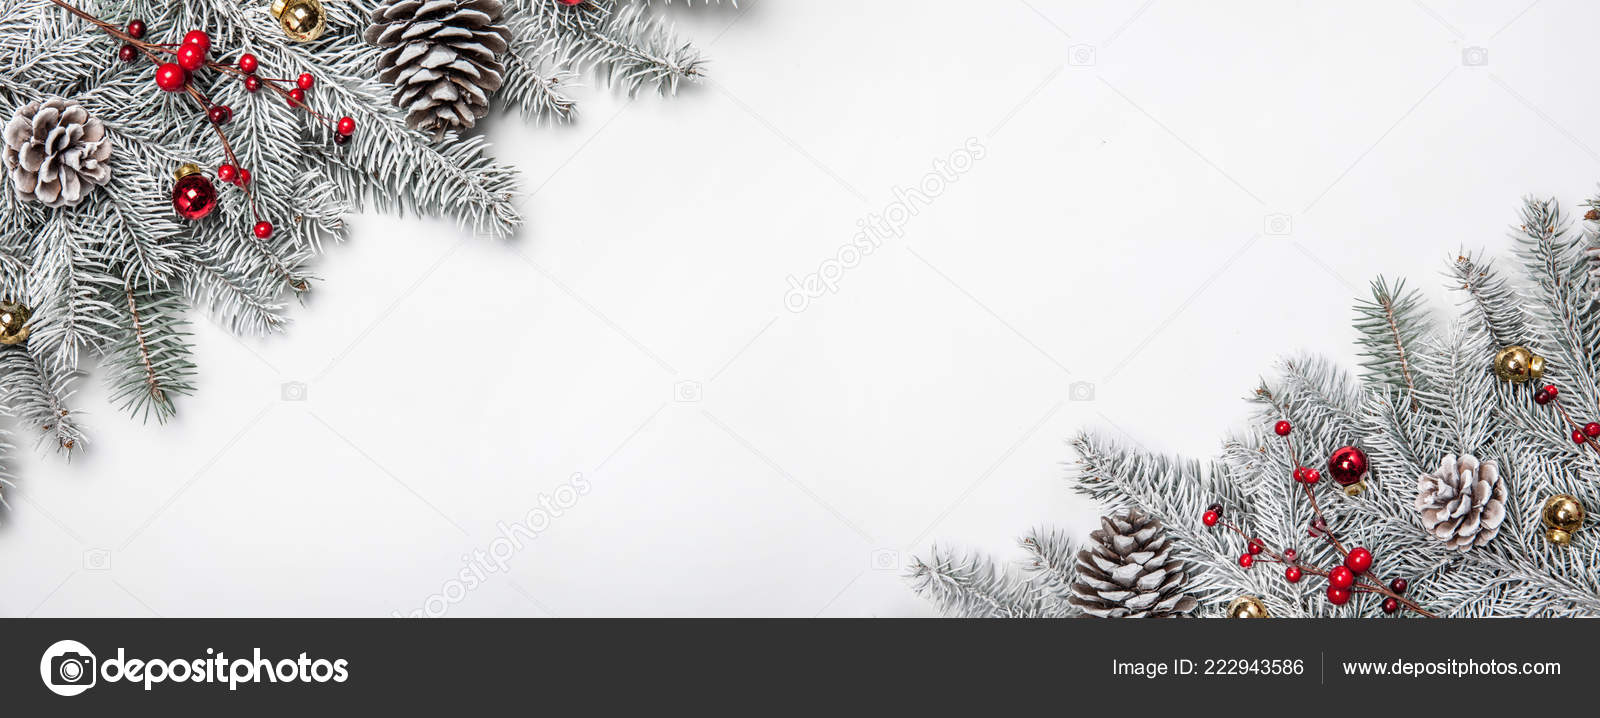 Christmas Card Background.Christmas Card White Background With Snow Fir Tree And